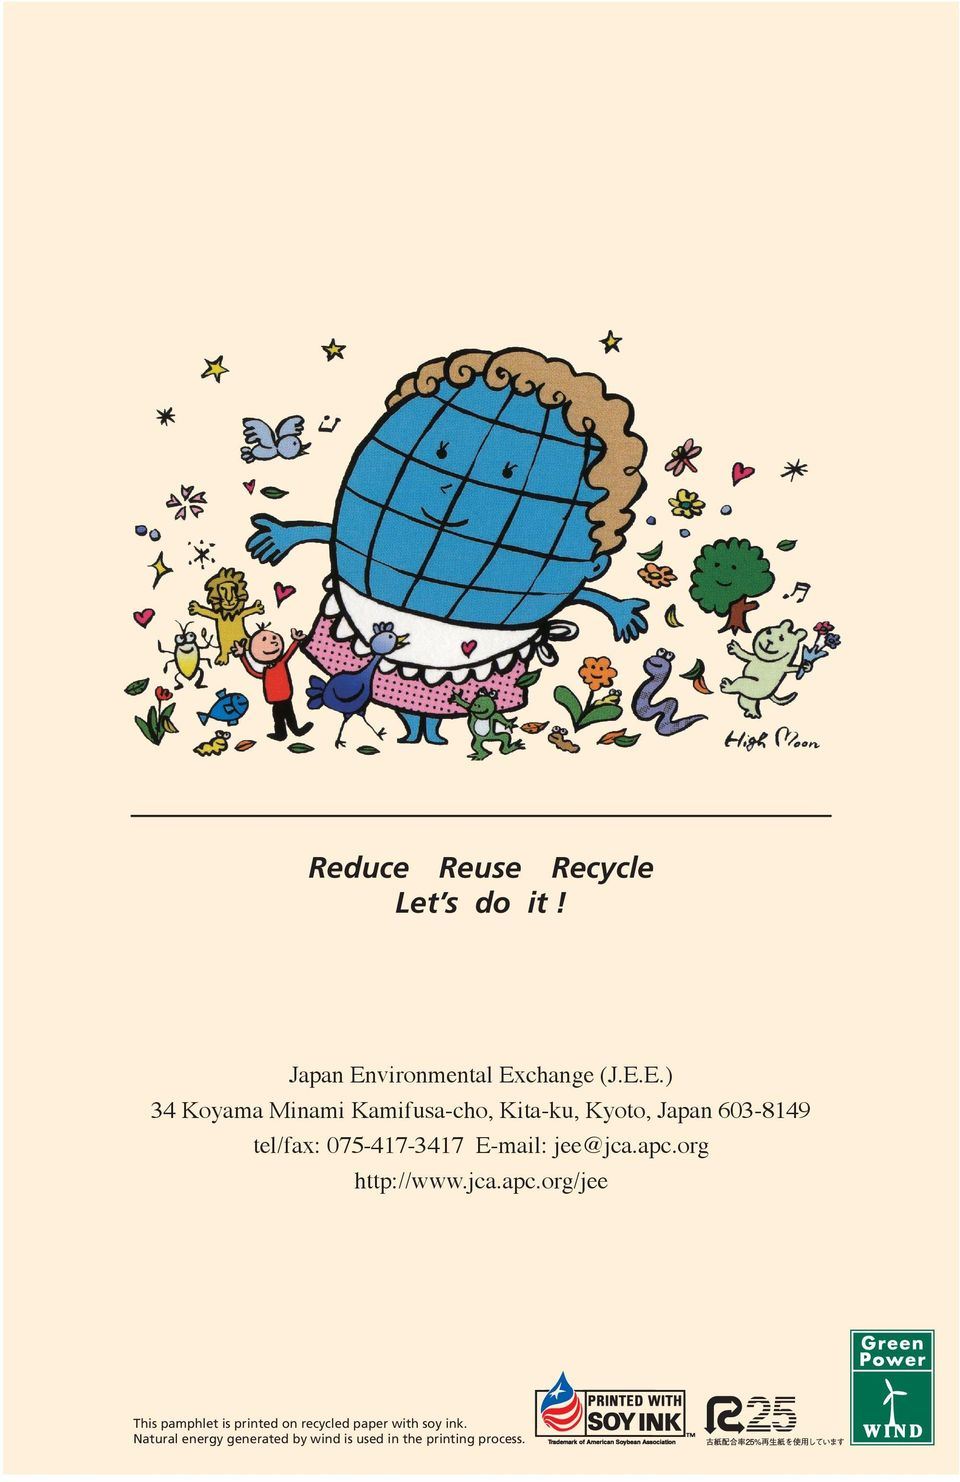 How to Reduce Waste, Recycle and Dispose of Garbage in Kyoto